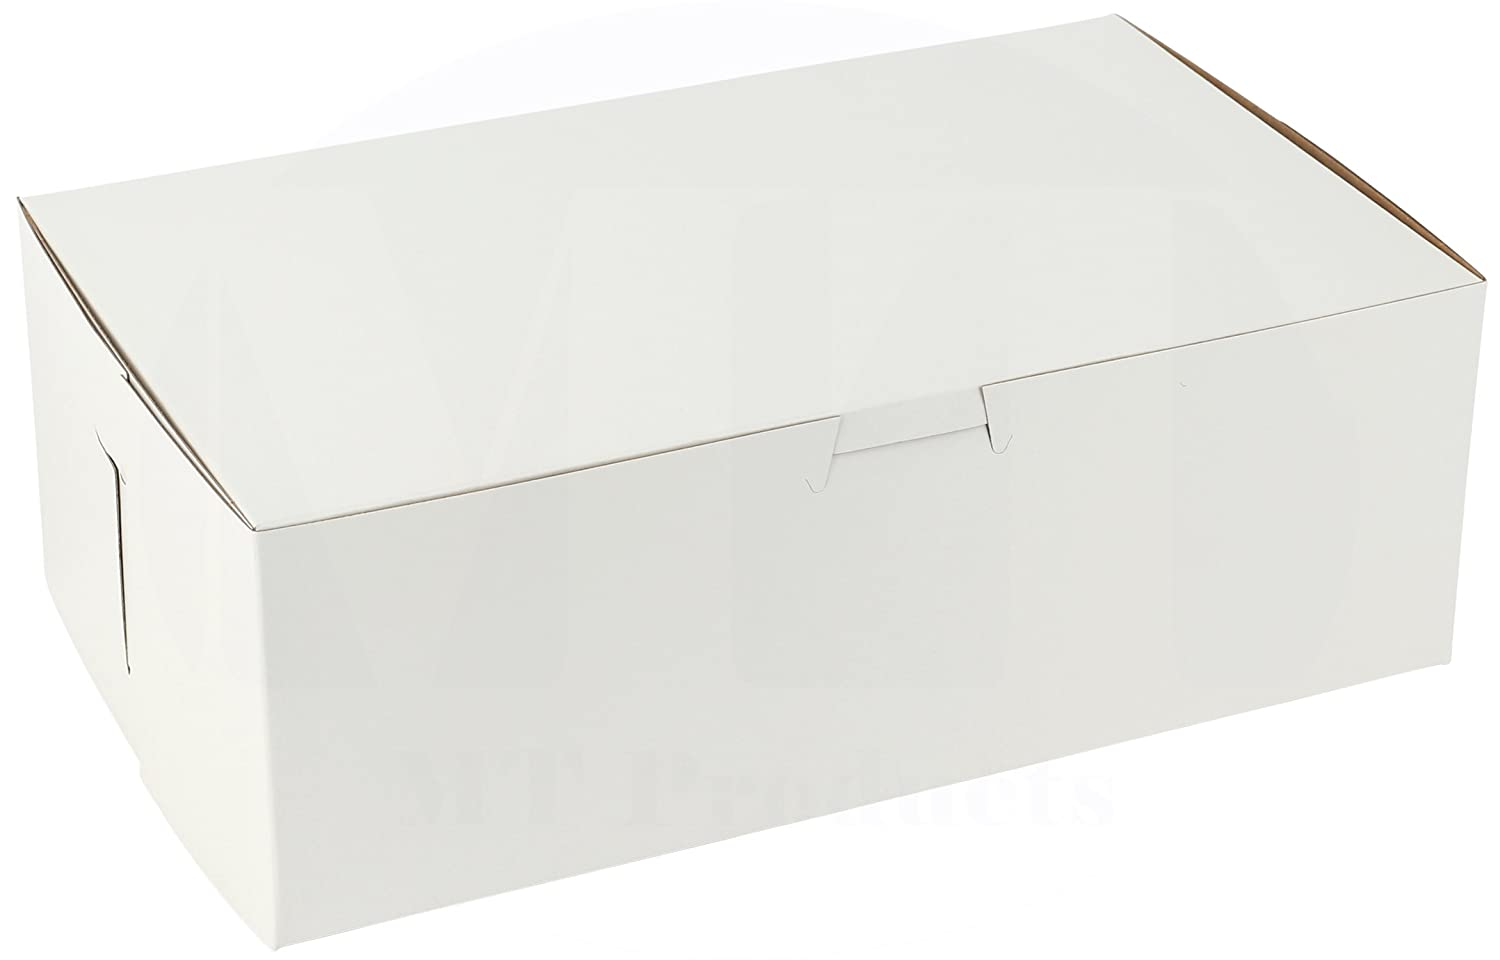 Pastry Boxes Pack of 15 – Size 8